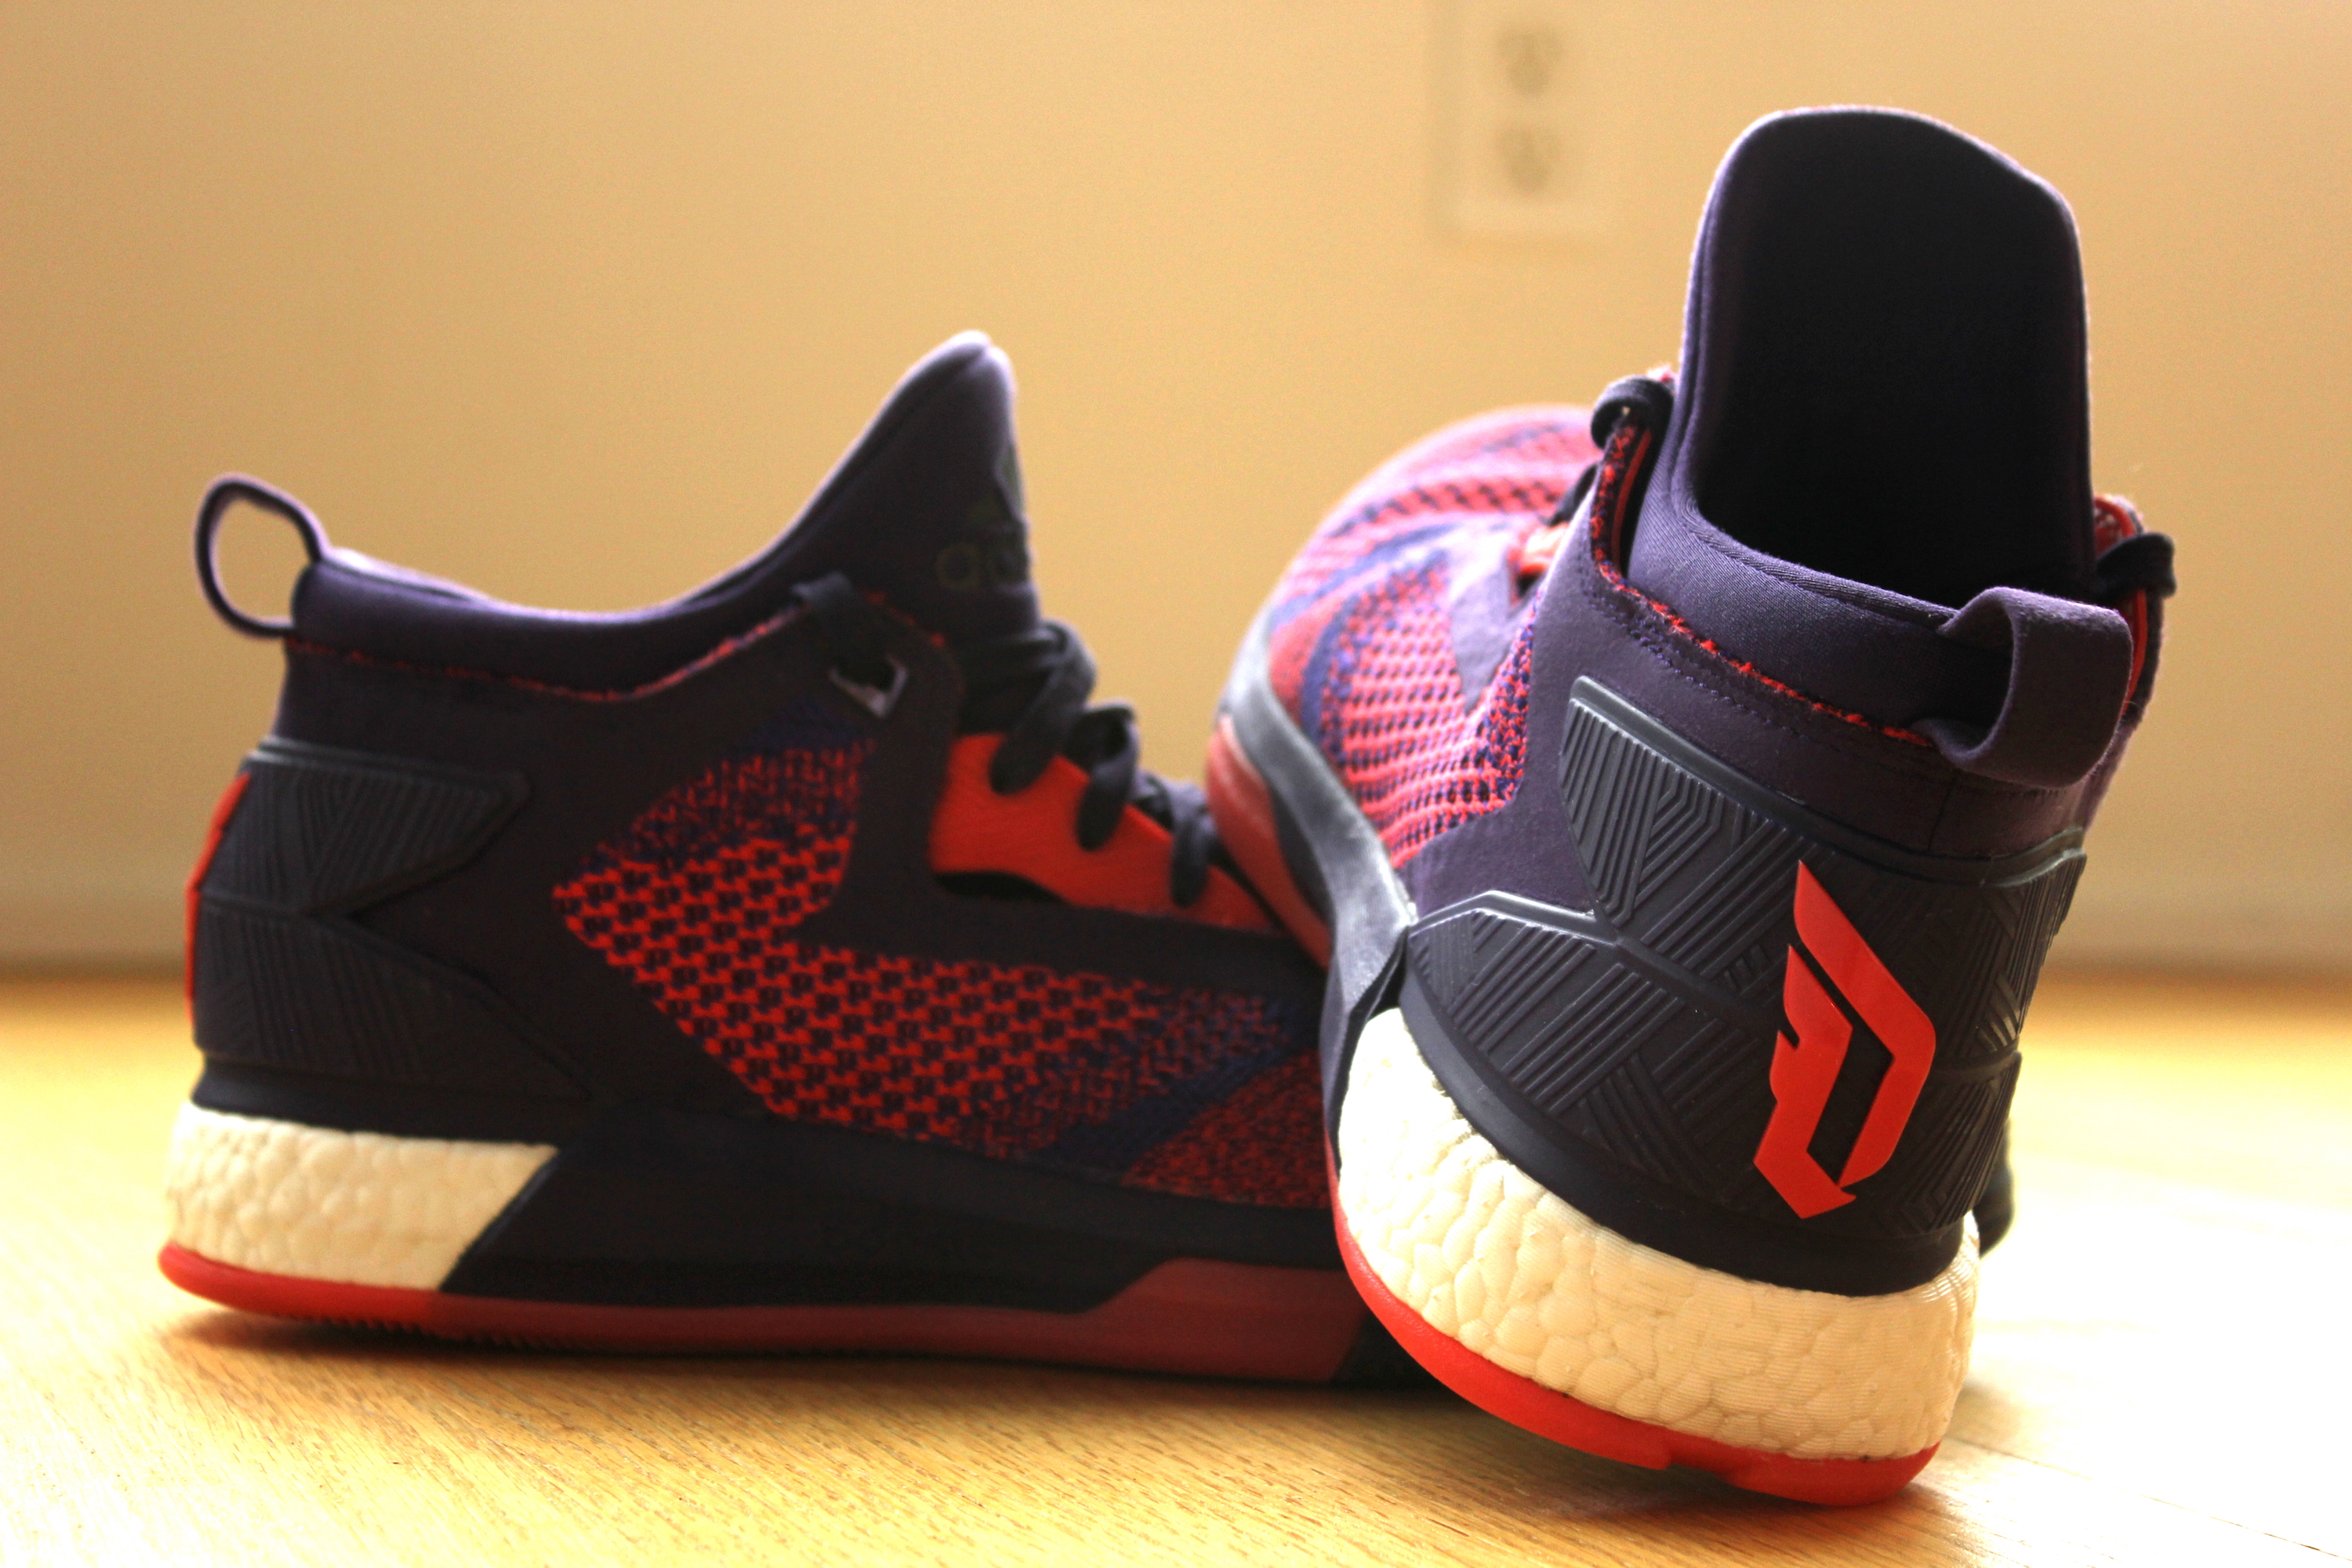 D Lillard 2 Shoe Review  Boost vs. Bounce - Blazer s Edge 3ab3cdbf9